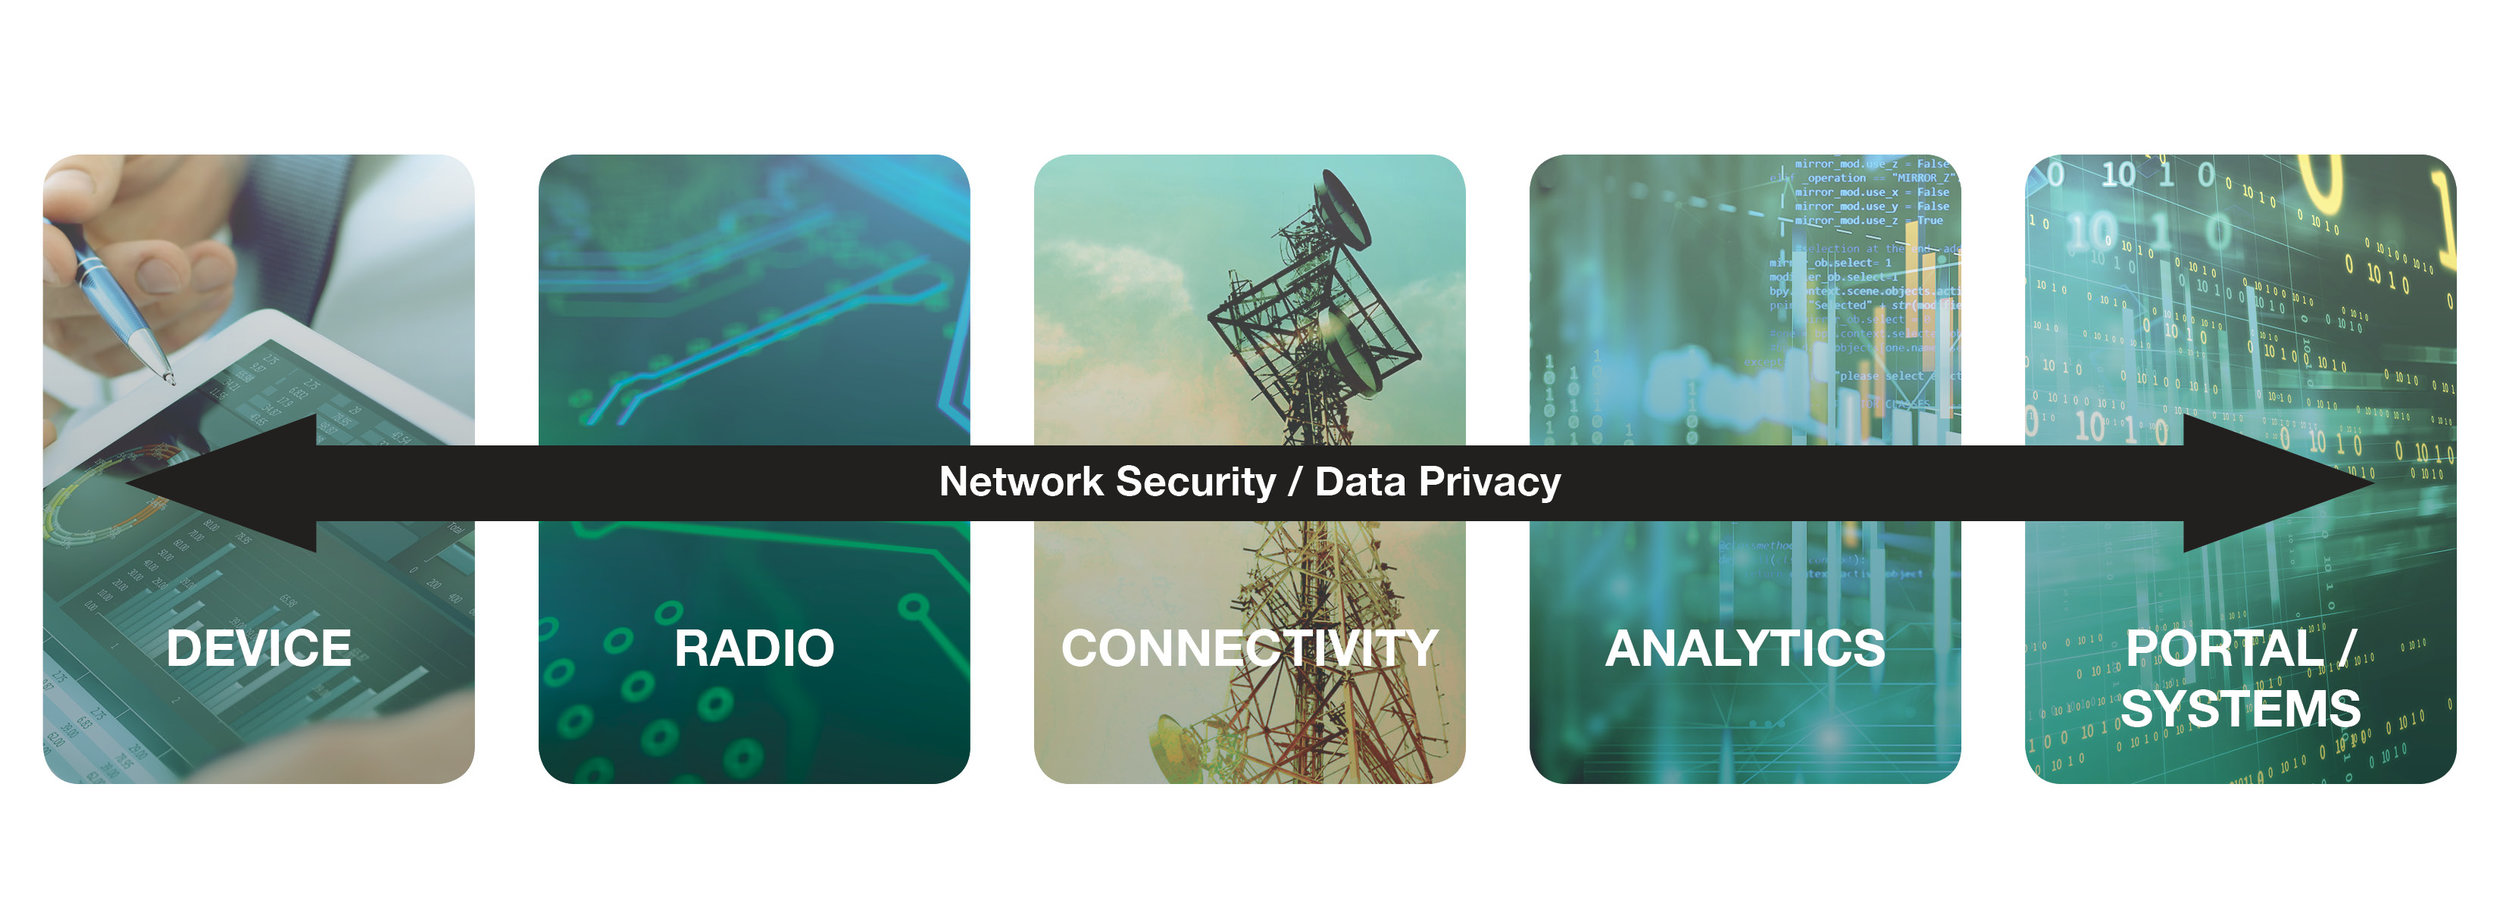 Network Security / Data Privacy